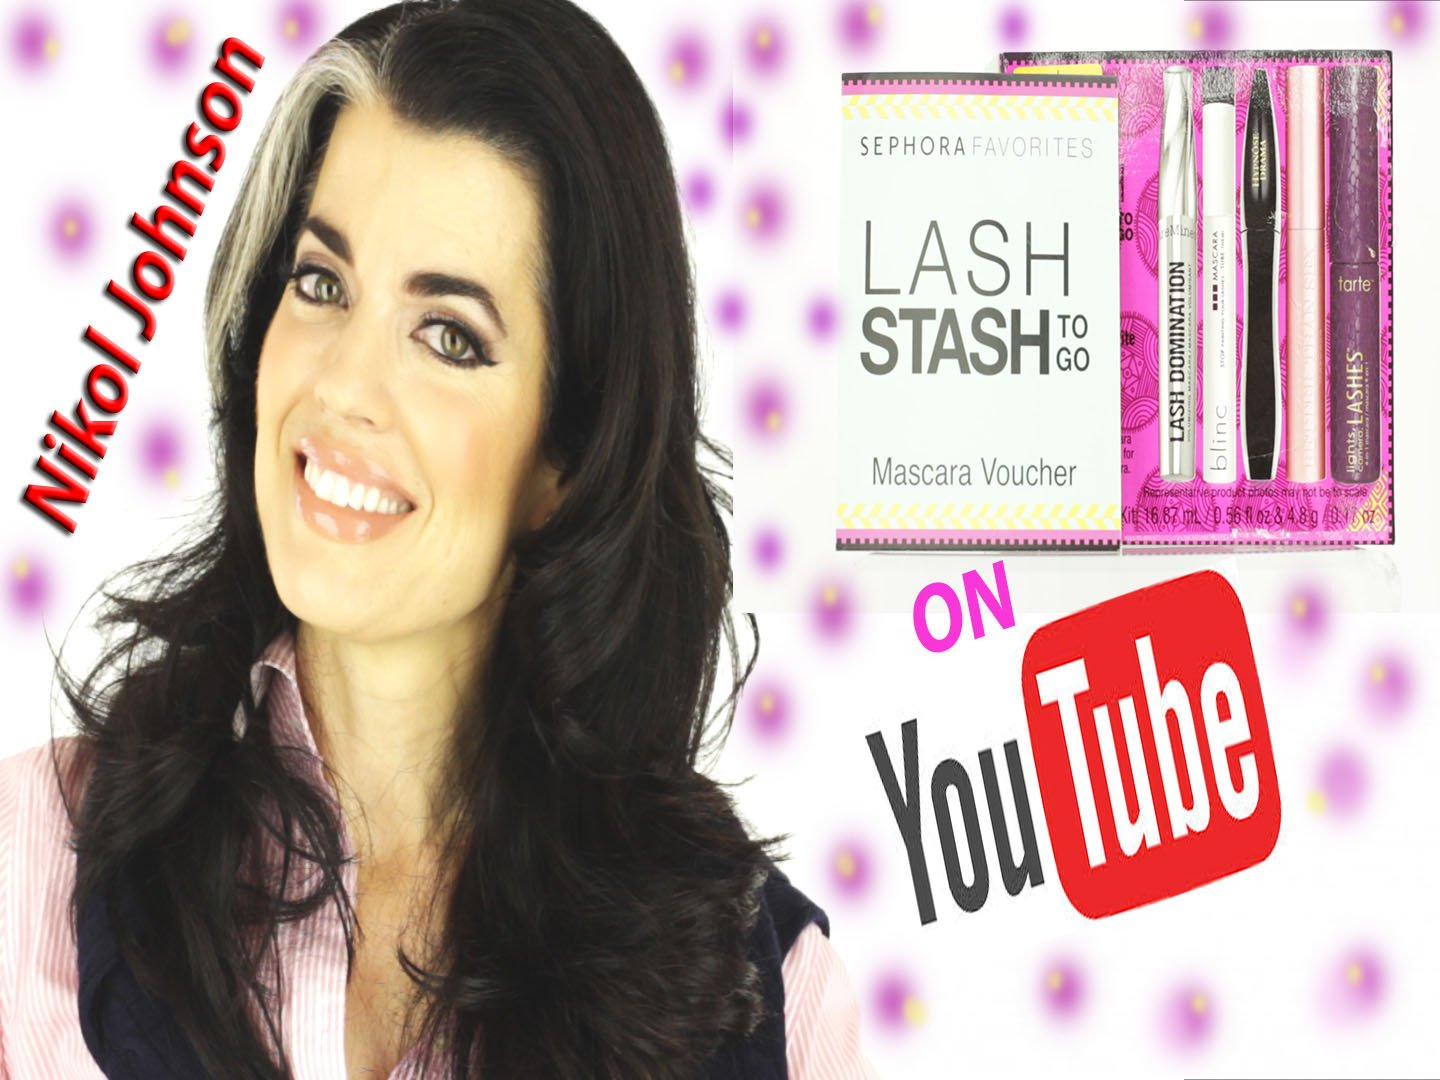 Sephora's Lash Stash To Go Review